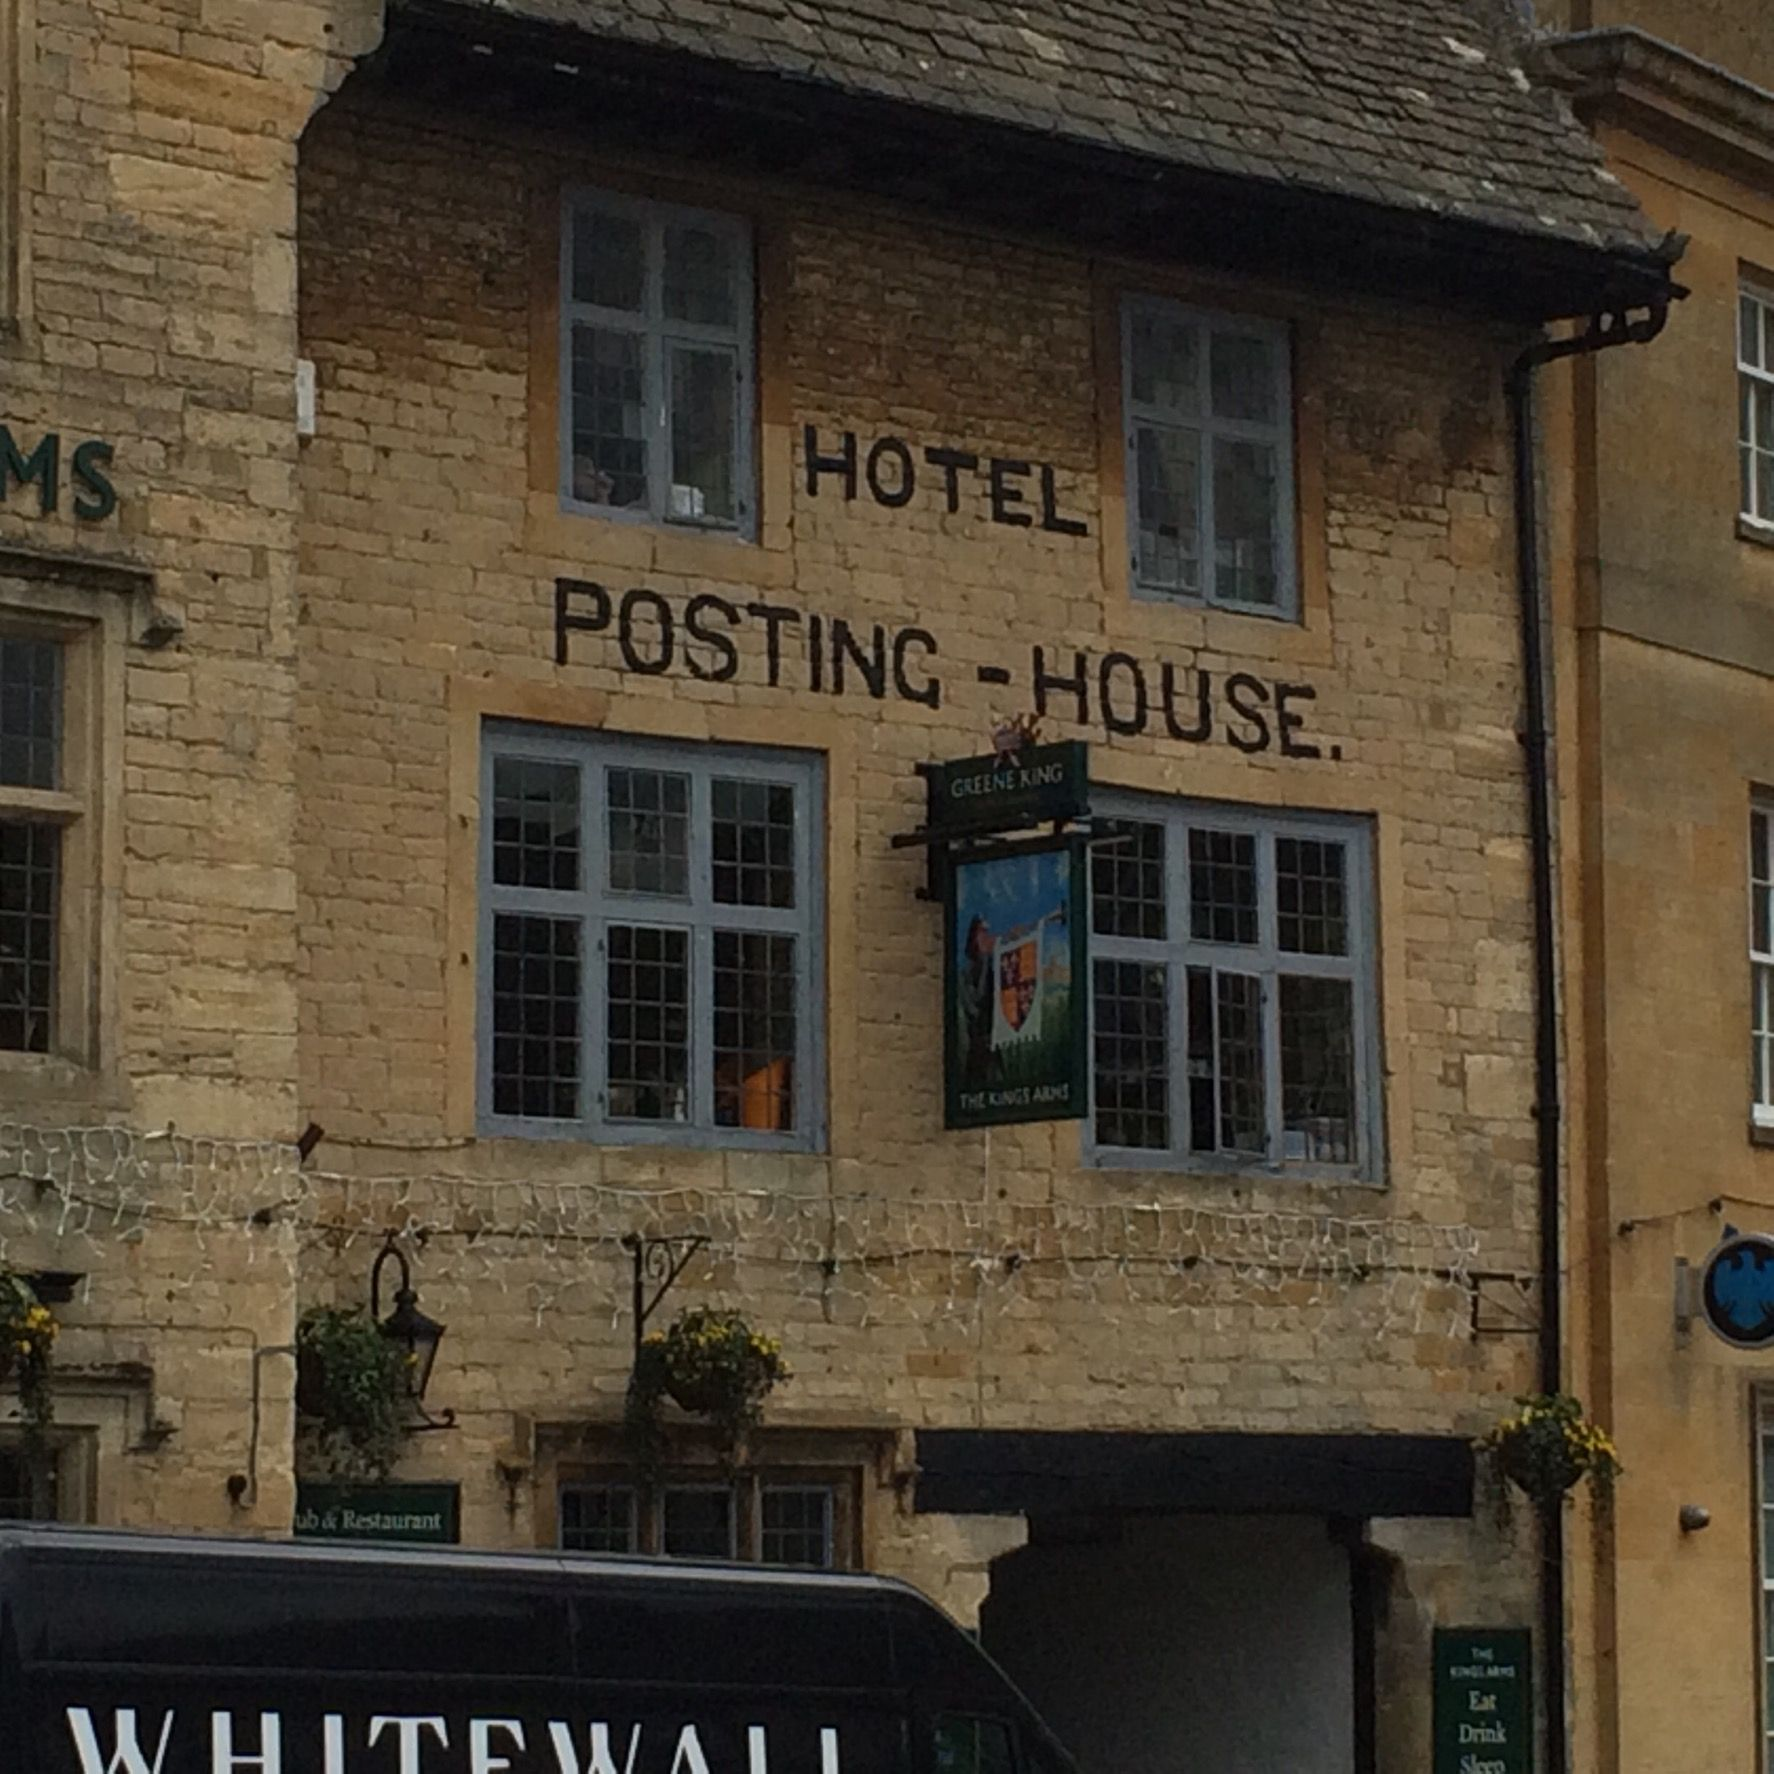 Stow on the Wold, Cotswolds, 13th April 2016